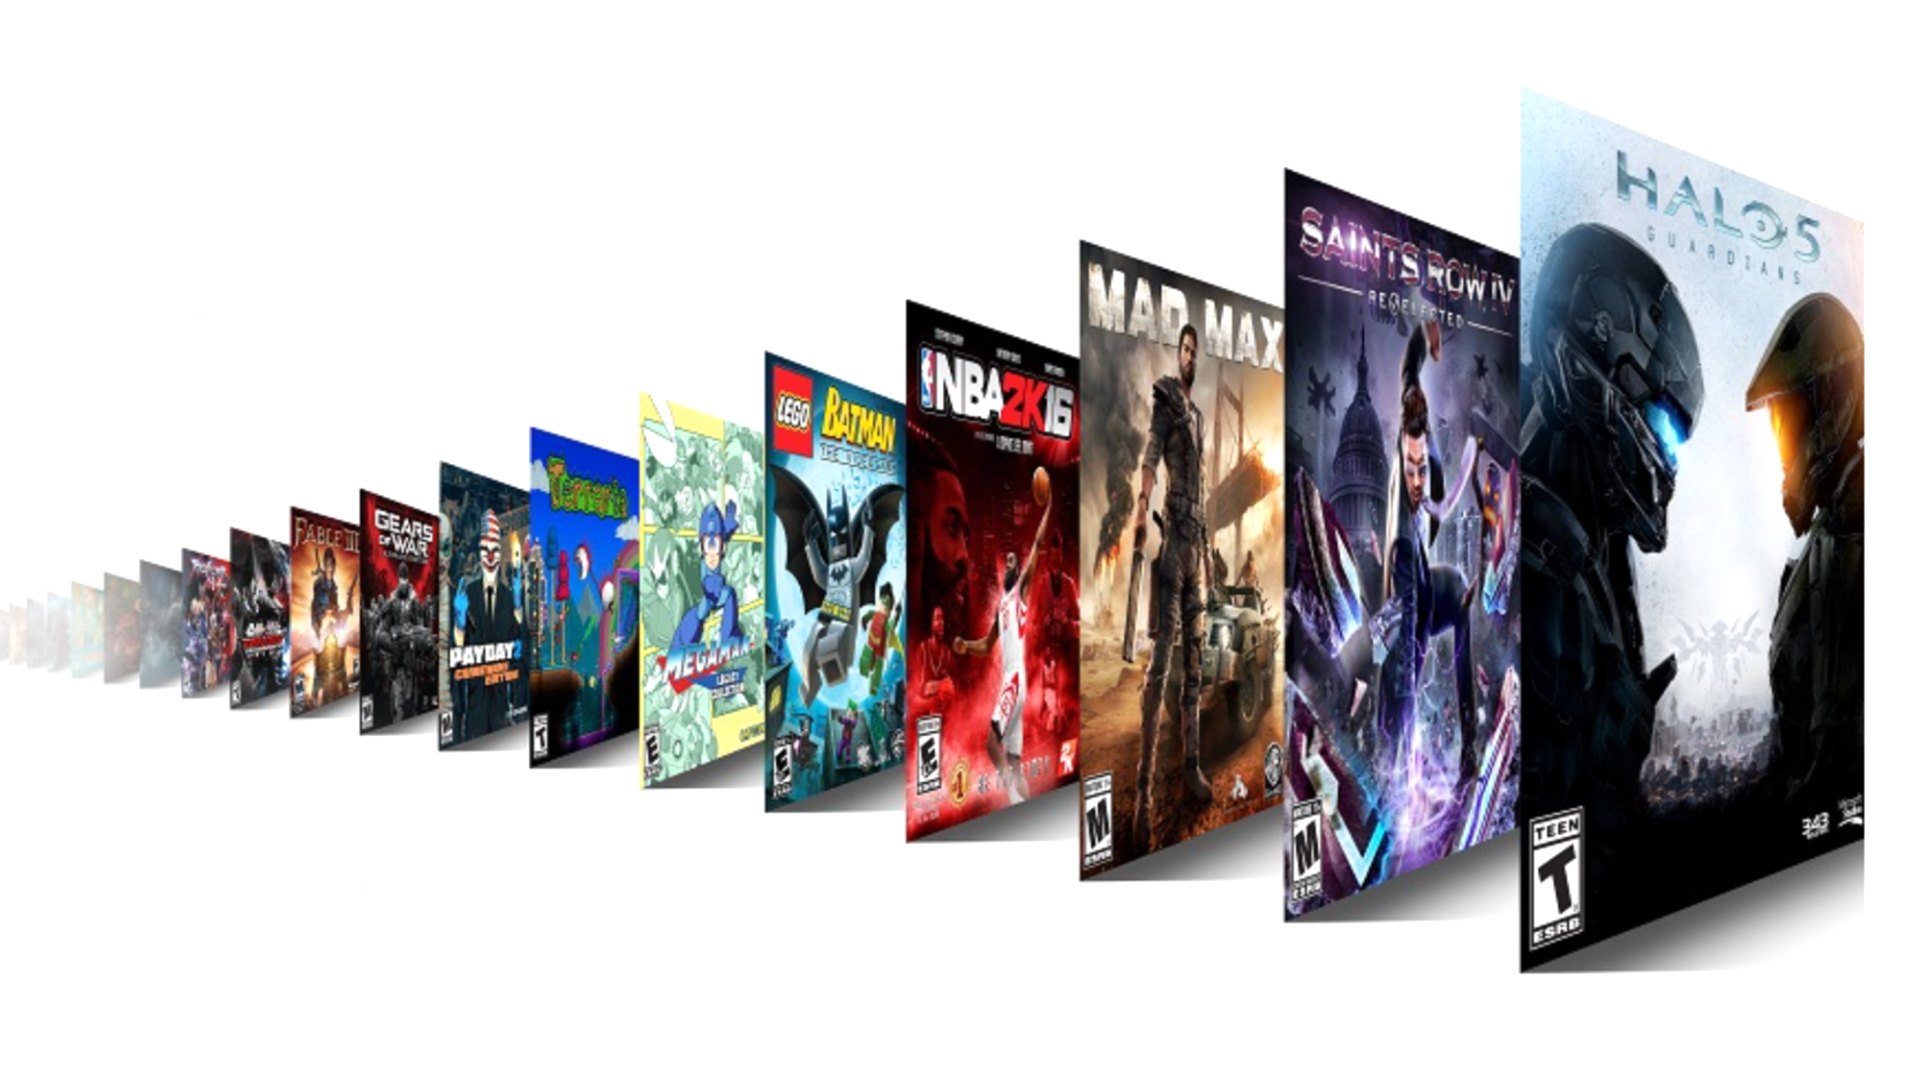 Ahead of Microsoft's Black Friday deals, Xbox Live Gold and Xbox Game Pass cost $1 a piece for the first month